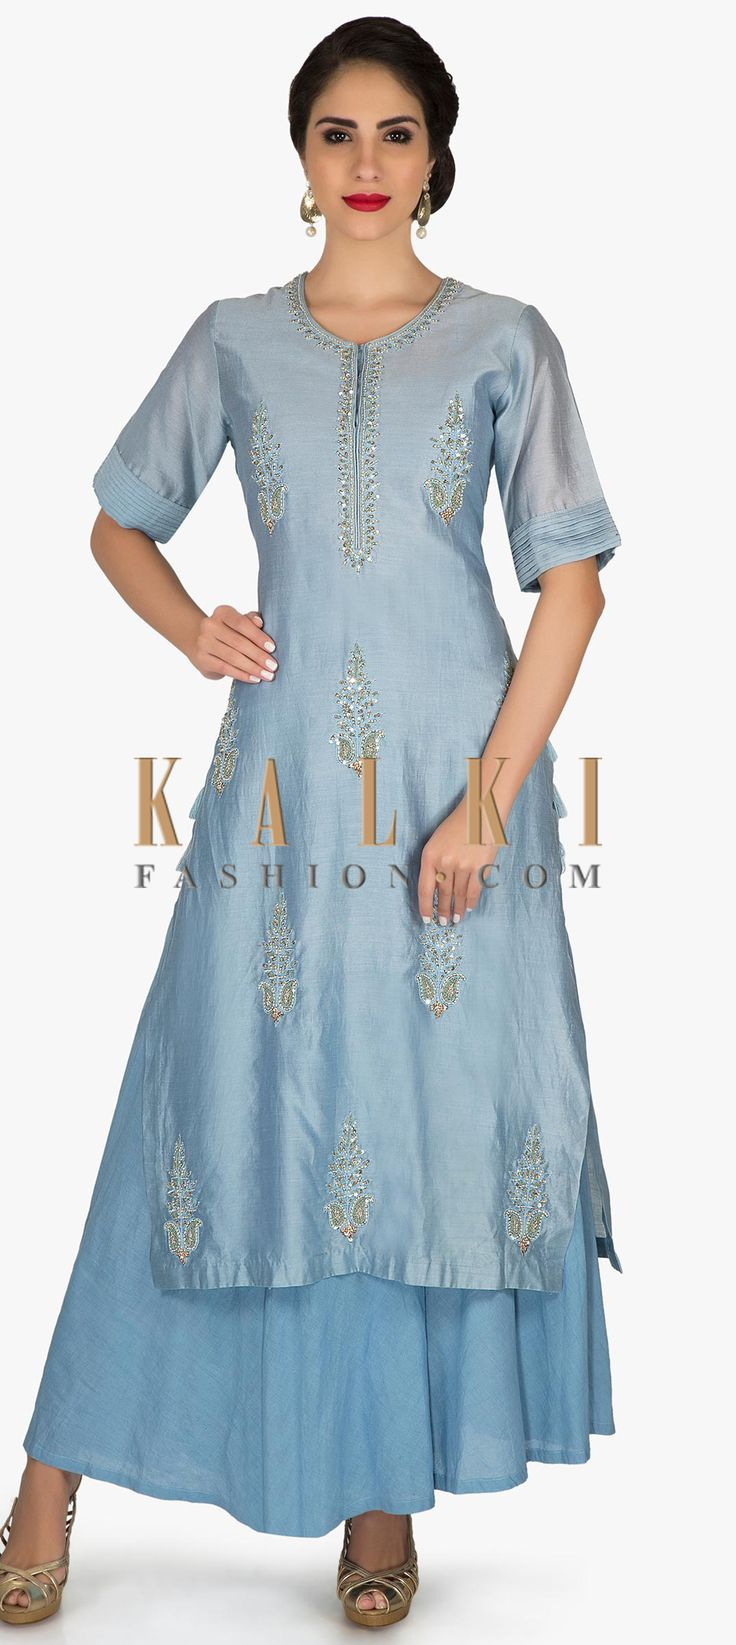 862 best Indian clothes images on Pinterest | India fashion, Indian ...